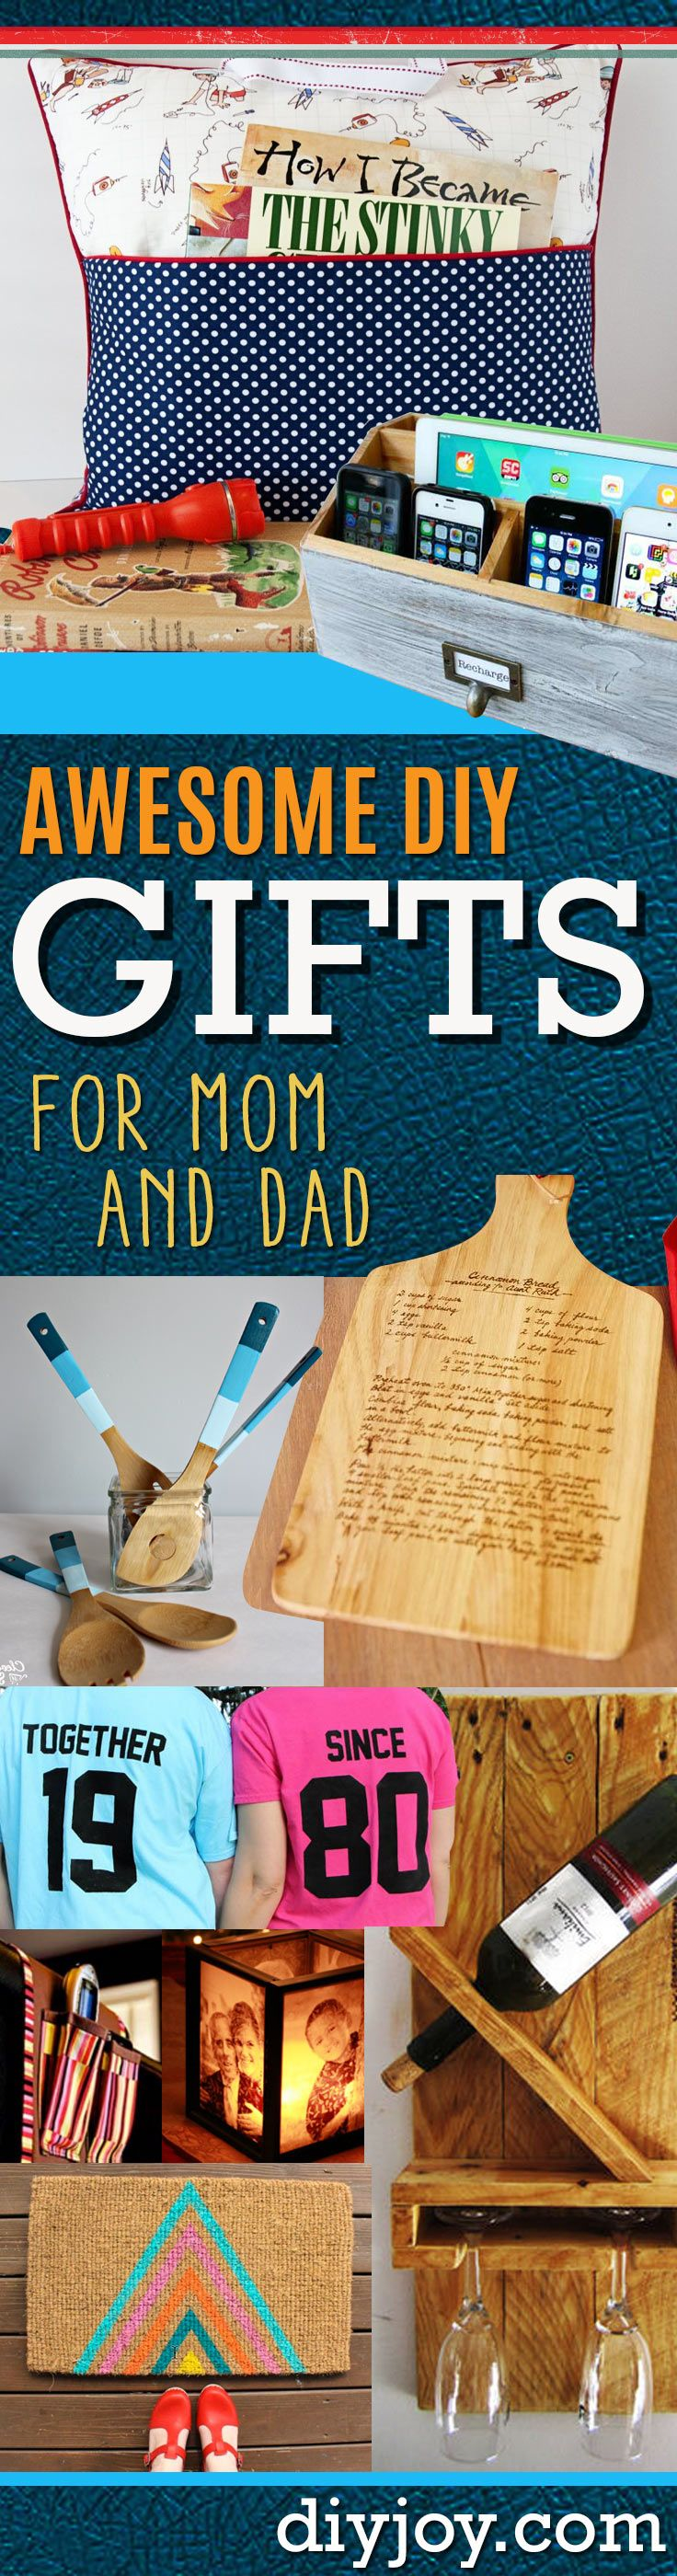 Best 25+ Homemade gifts for dad ideas on Pinterest | Homemade dad ...